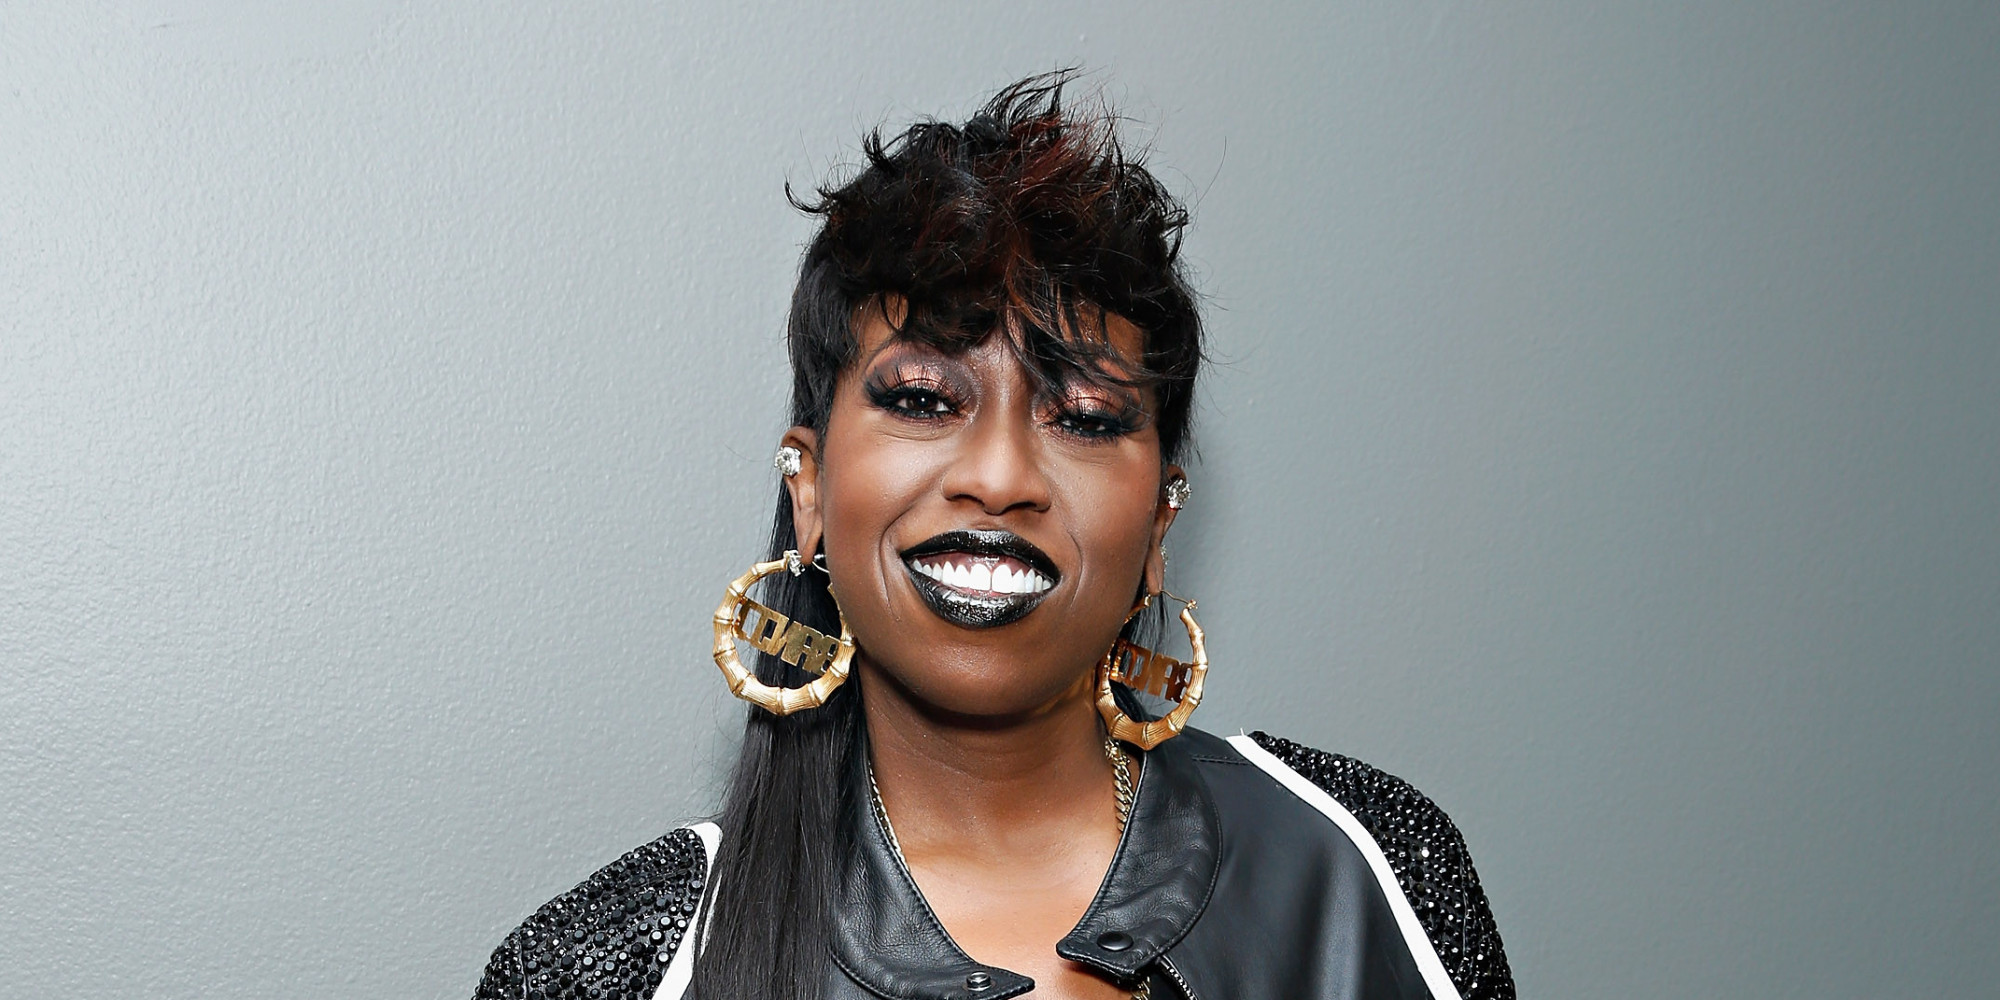 Missy Elliott is an American R&B singer who first broke out into the  entertainment scene as a member of Sista, an all-female hip hop group in  the 1990's.